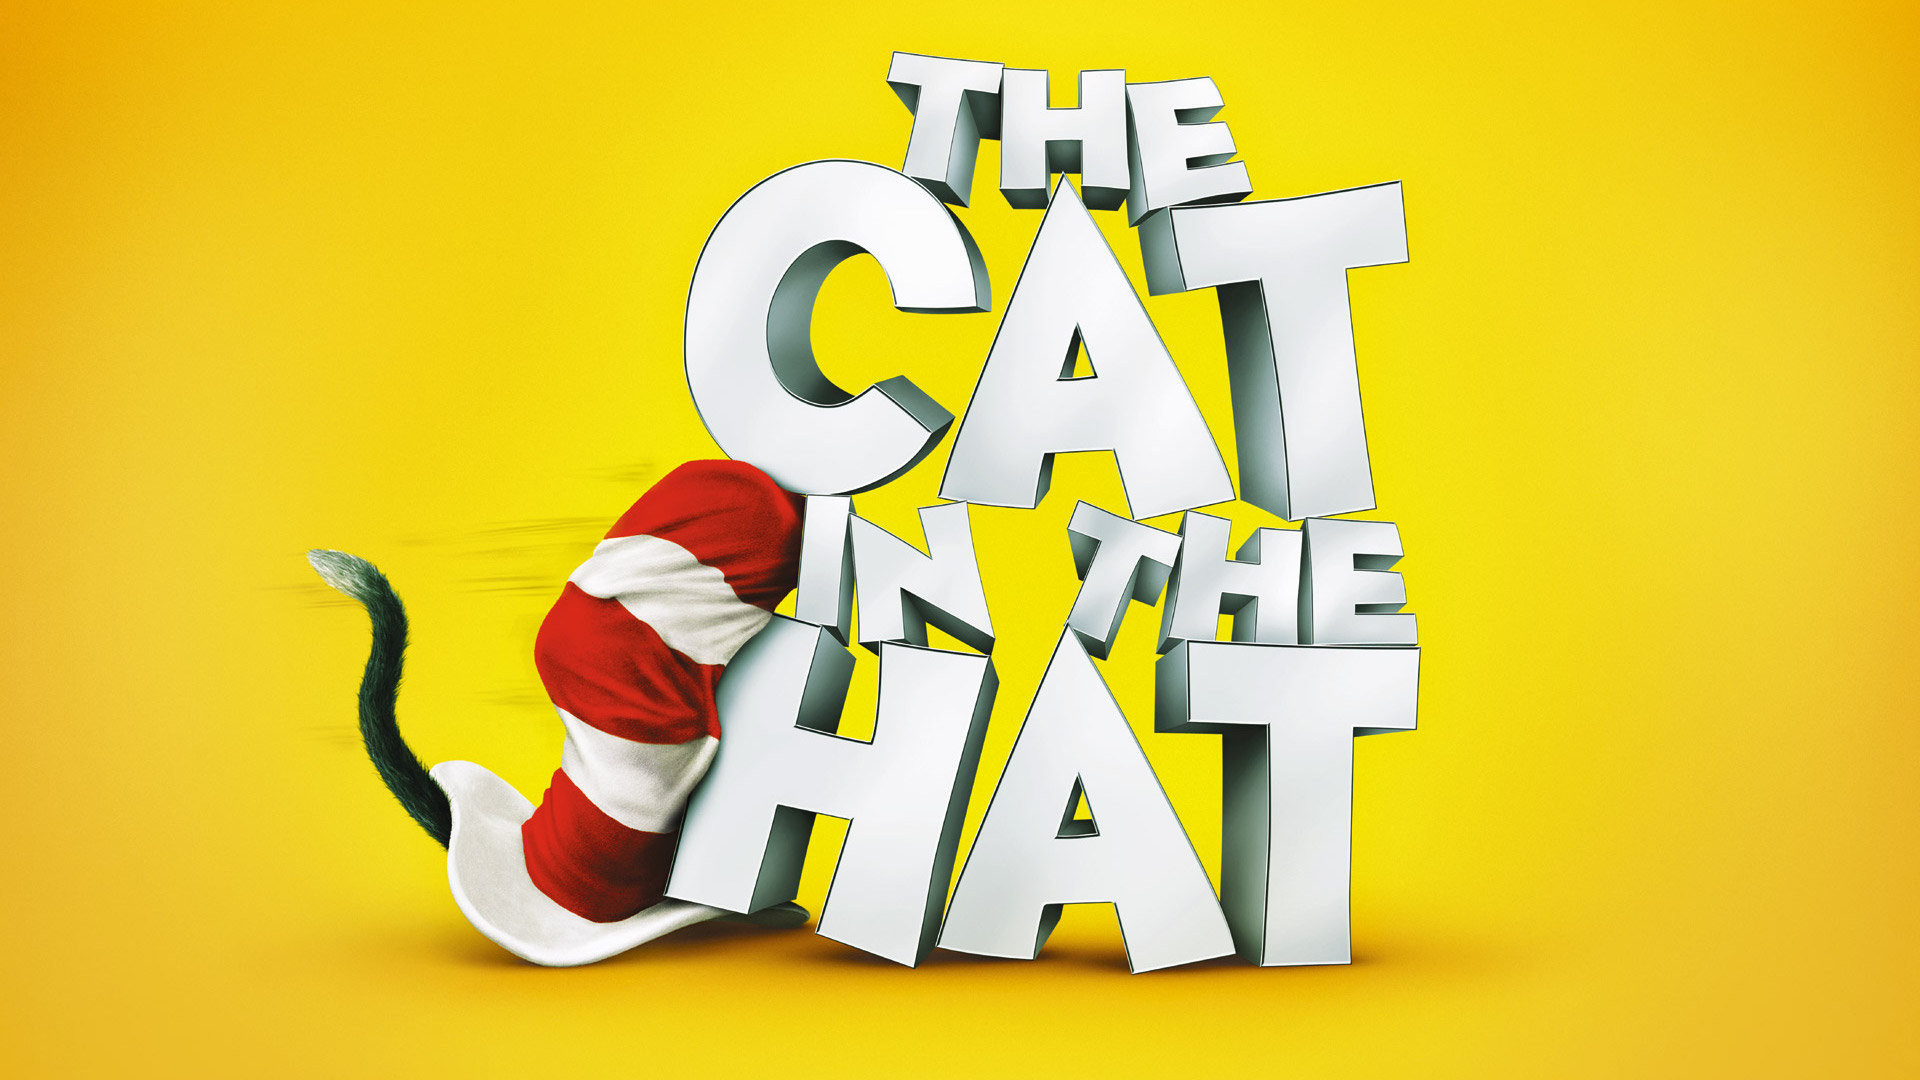 Res: 1920x1080, Dr. Seuss' The Cat in the Hat HD Wallpaper | Background Image |  |  ID:599053 - Wallpaper Abyss